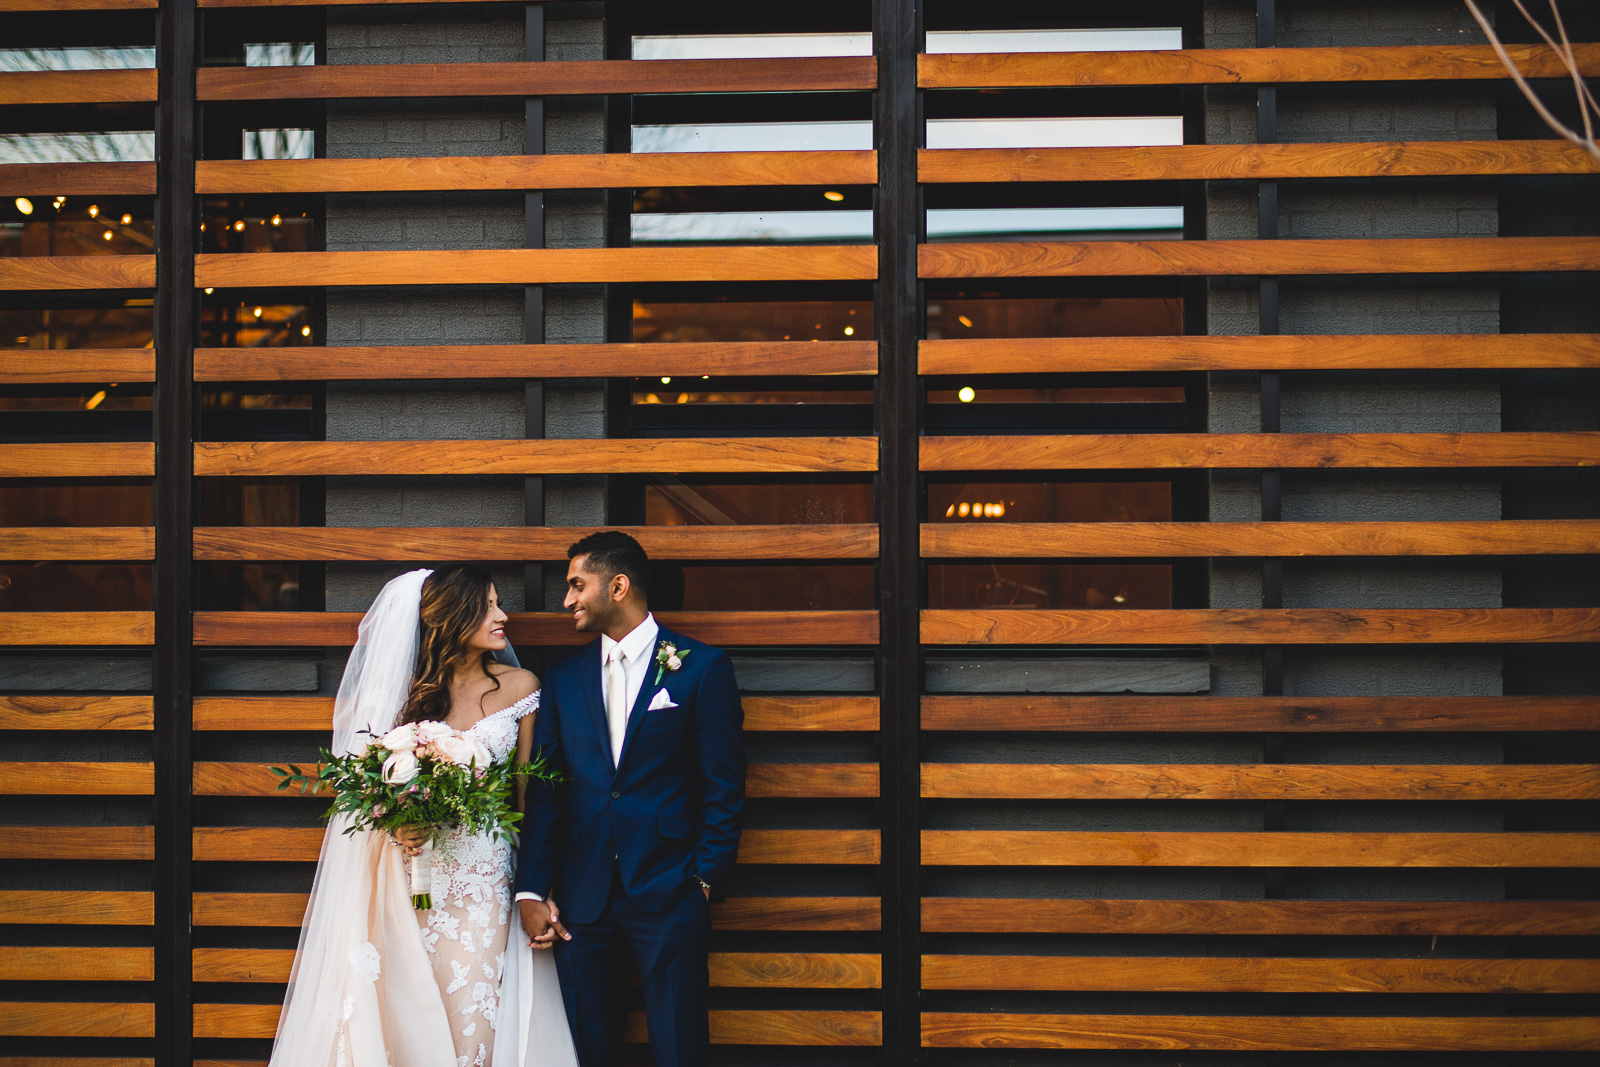 9 chicago wedding photographer best portraits during weddings review 1 - 2018 in Review // My Favorite Chicago Wedding Photography Portraits